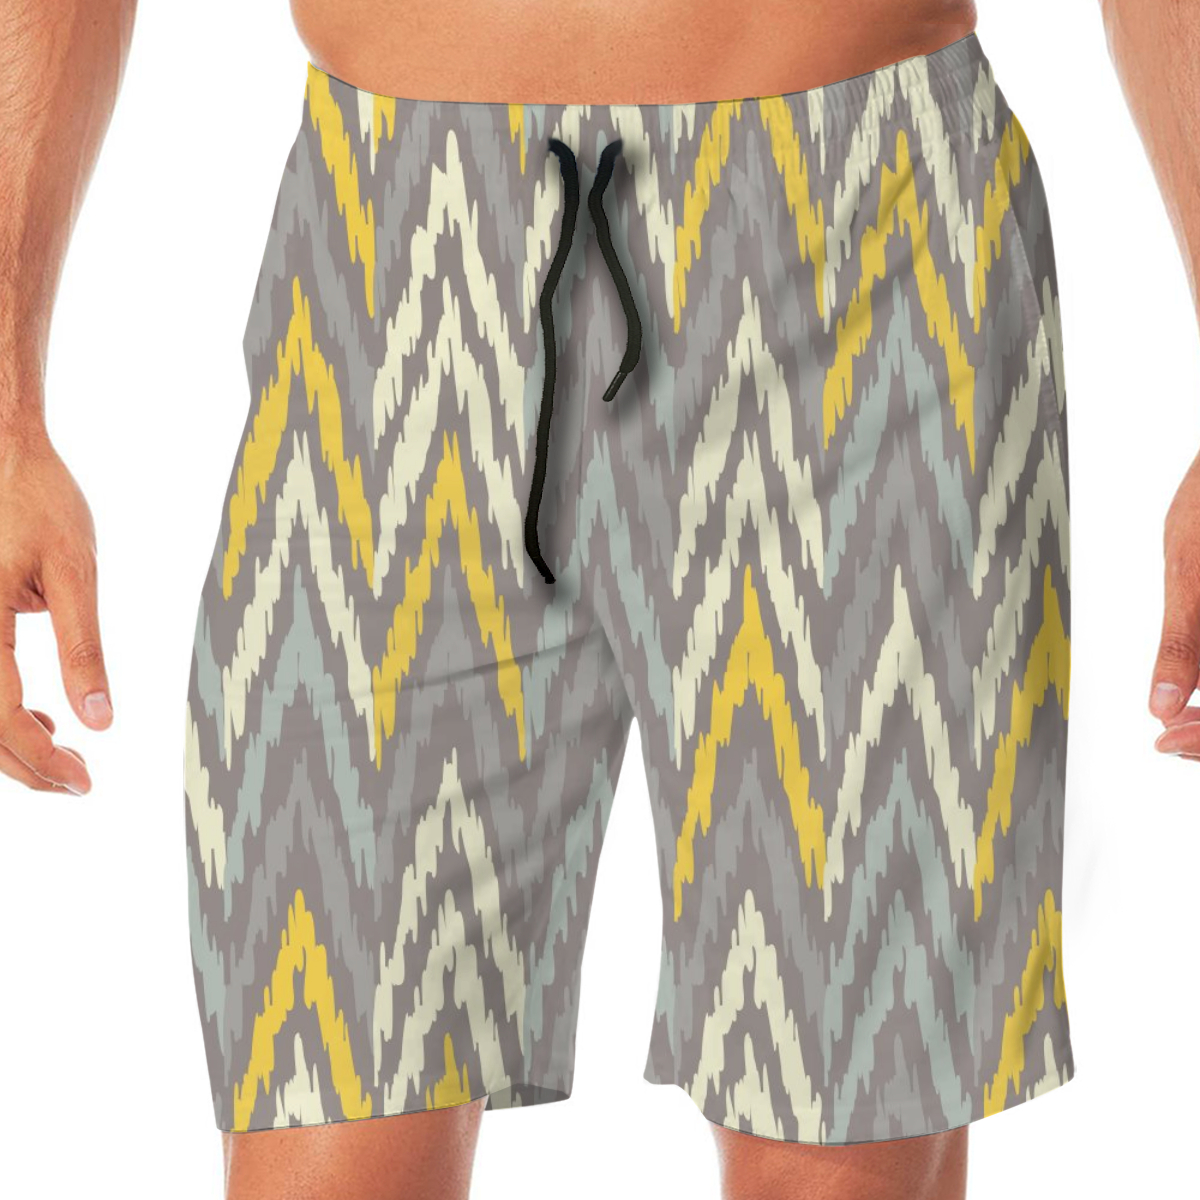 Ethnic Boho Ikat Men's Beach Pants Quick Drying Beach Shorts Swimming Surfing Boating Water Sports Trunks Loose Swimwear Shorts